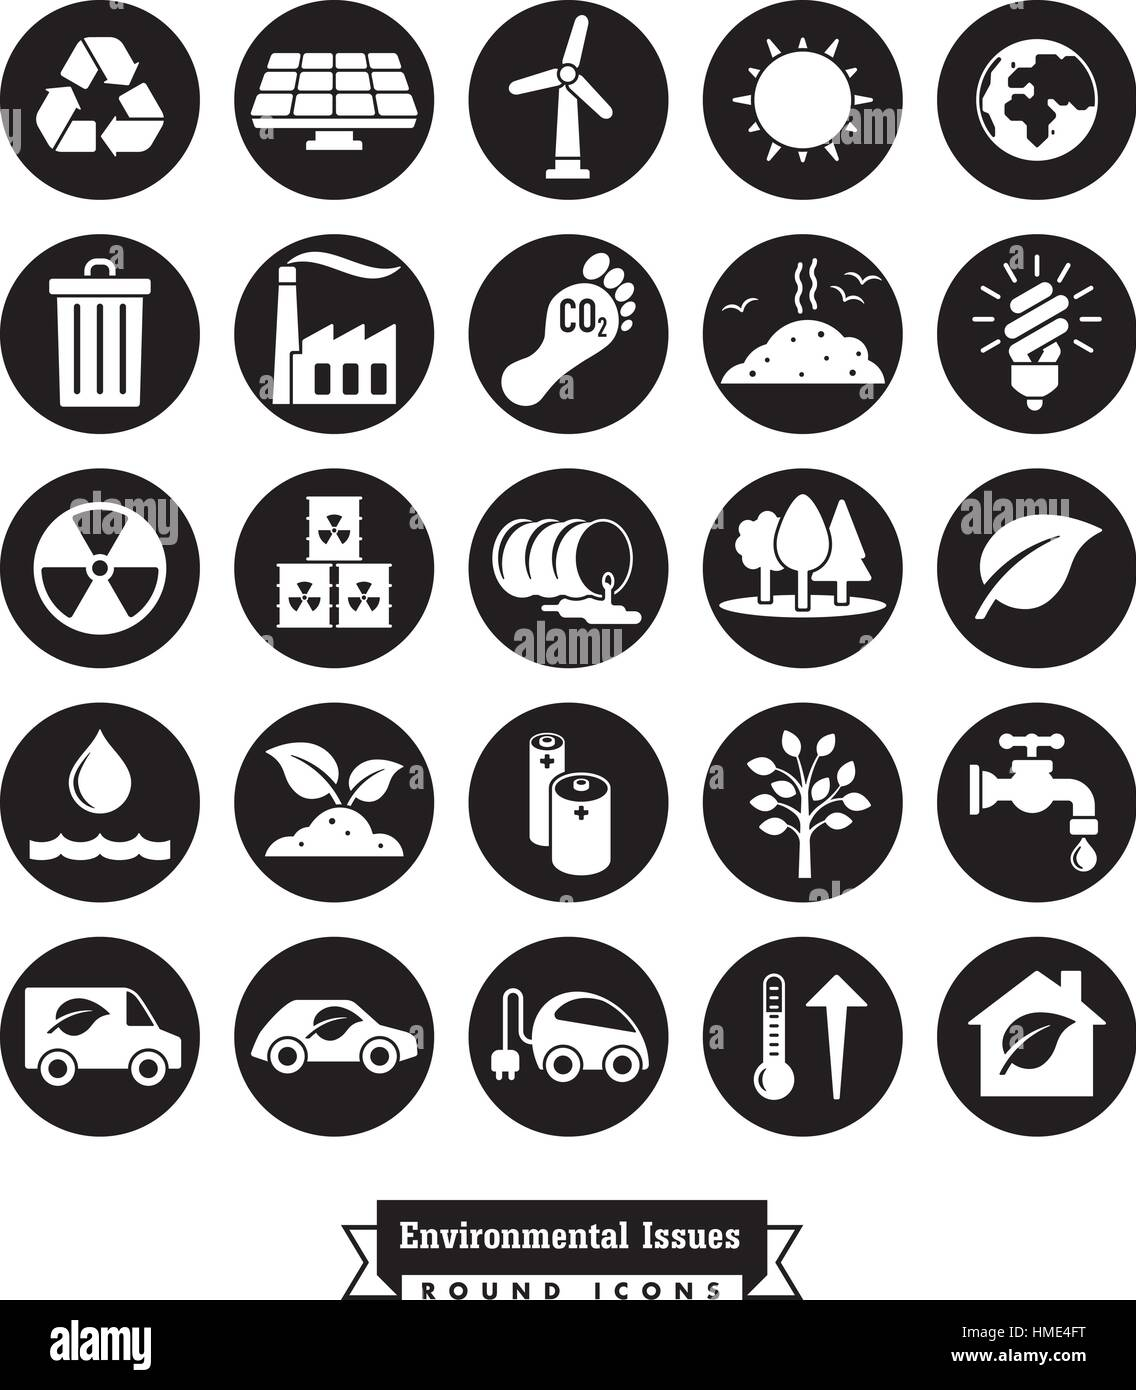 Collection of Environment and Climate related round vector icons - Stock Image